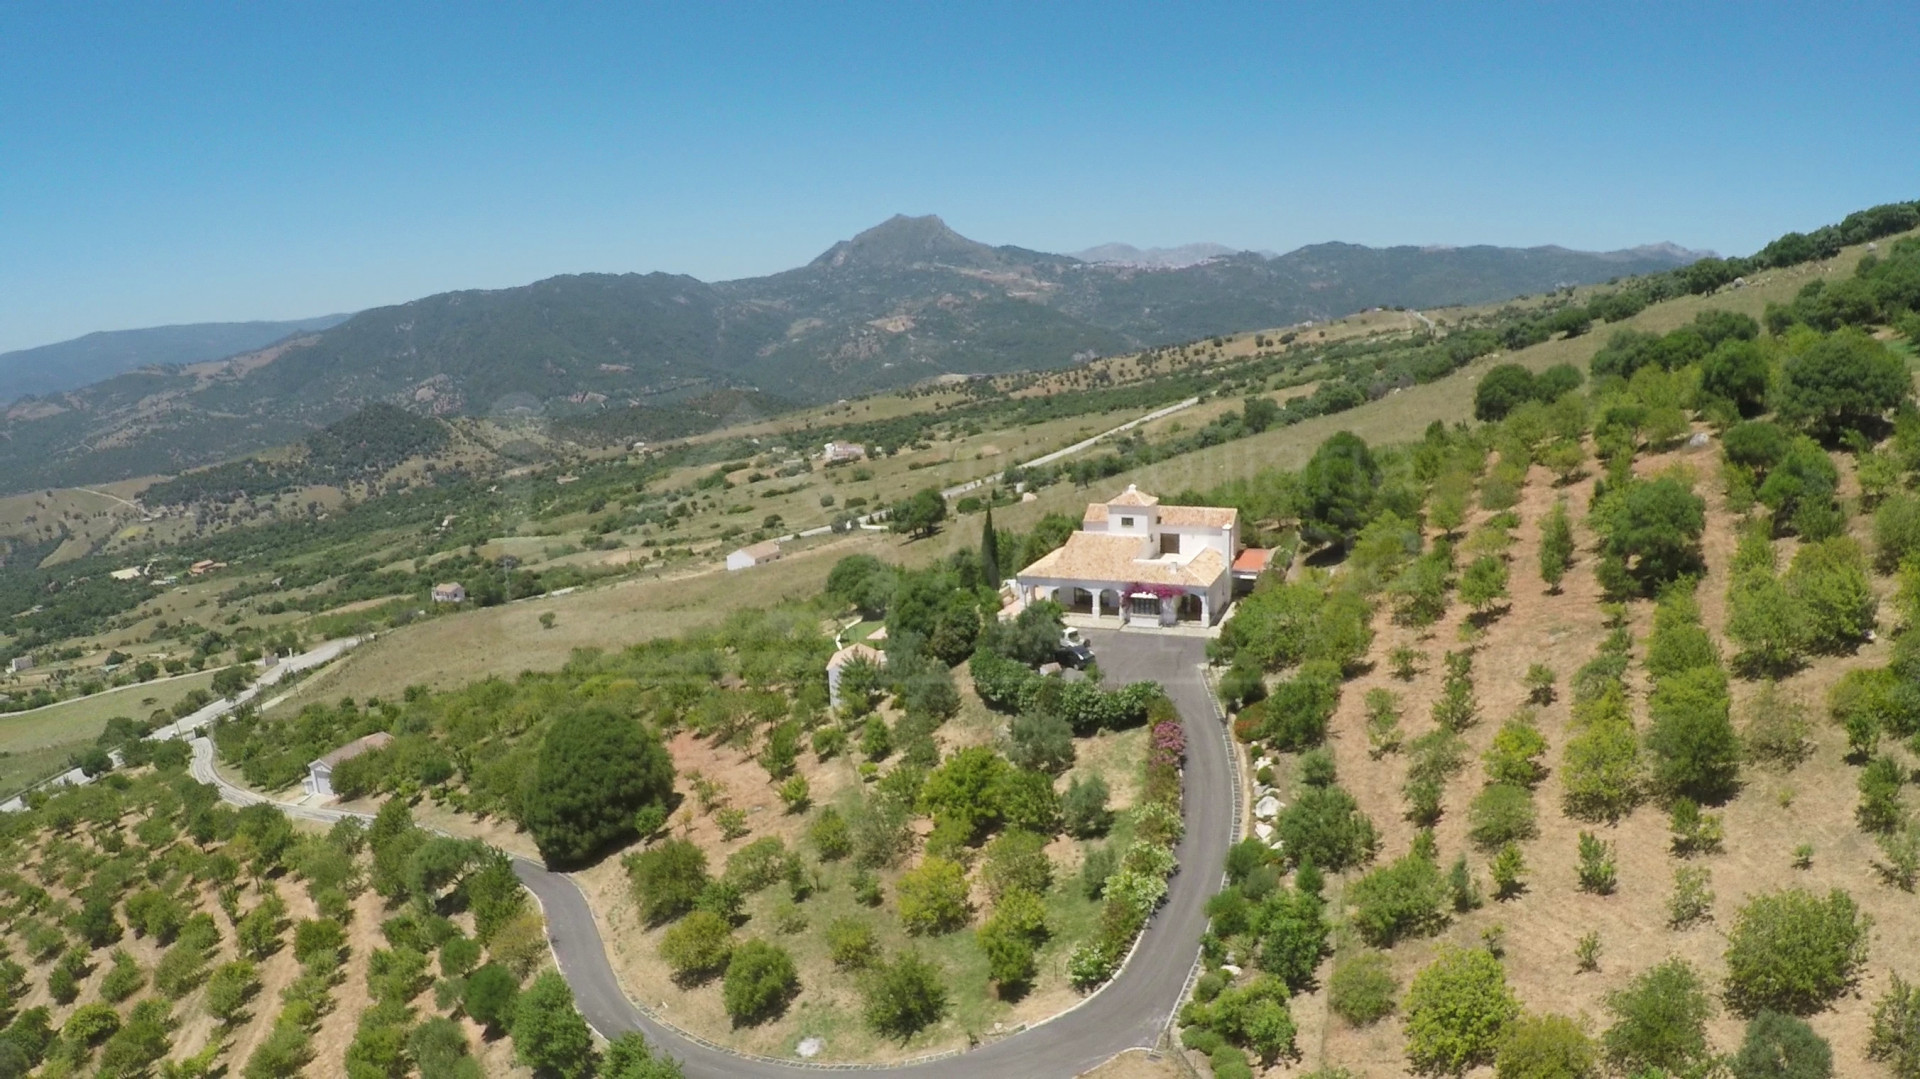 Charming 4-bedroom country villa and 240.000m2 farm ideal for equestrian activities for sale in Casares